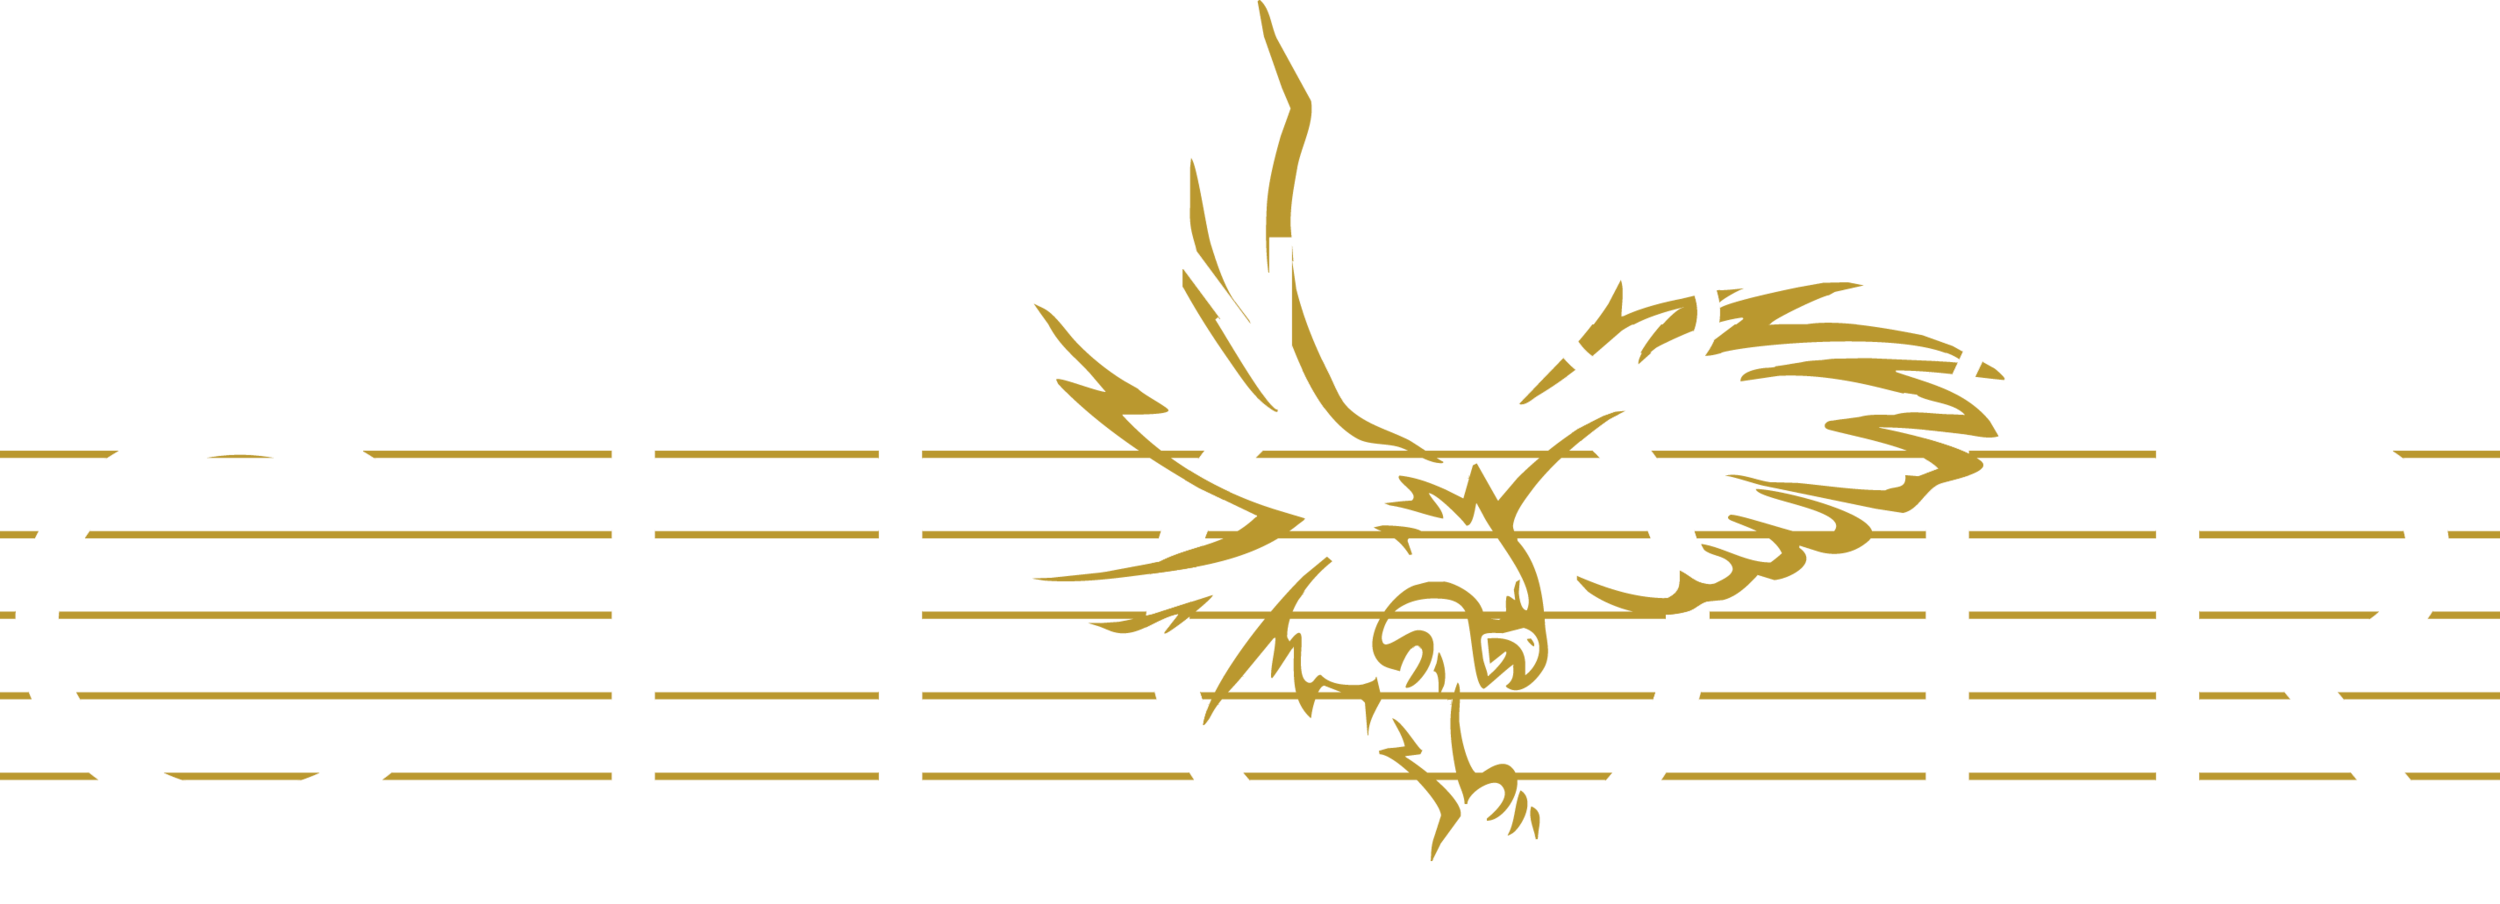 White on Gold.png